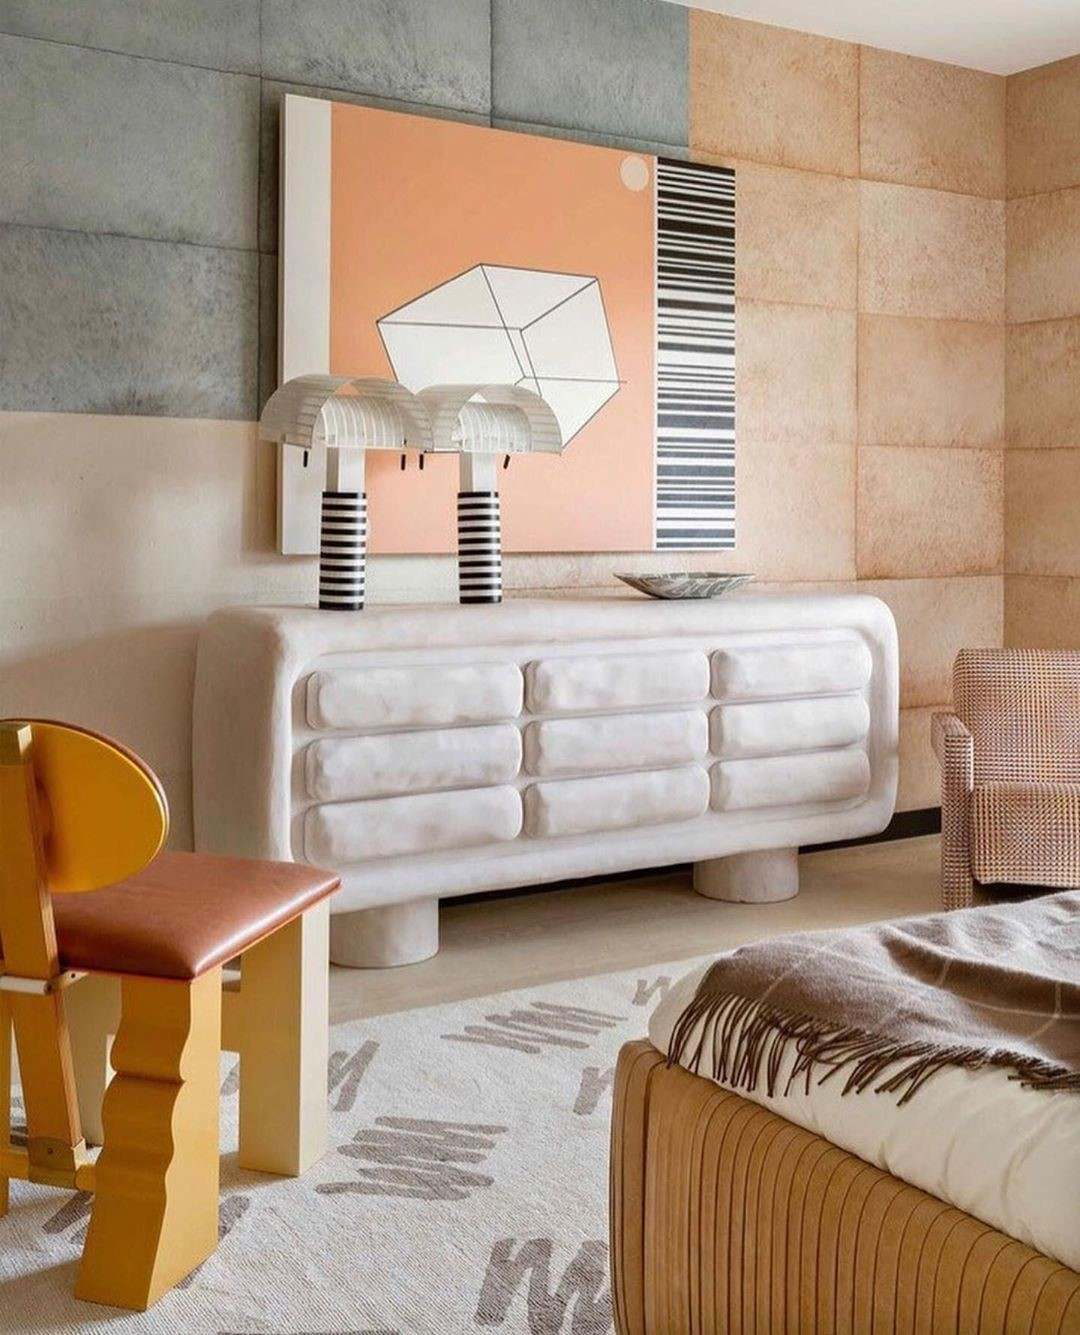 Pamono decor with used furniture - store